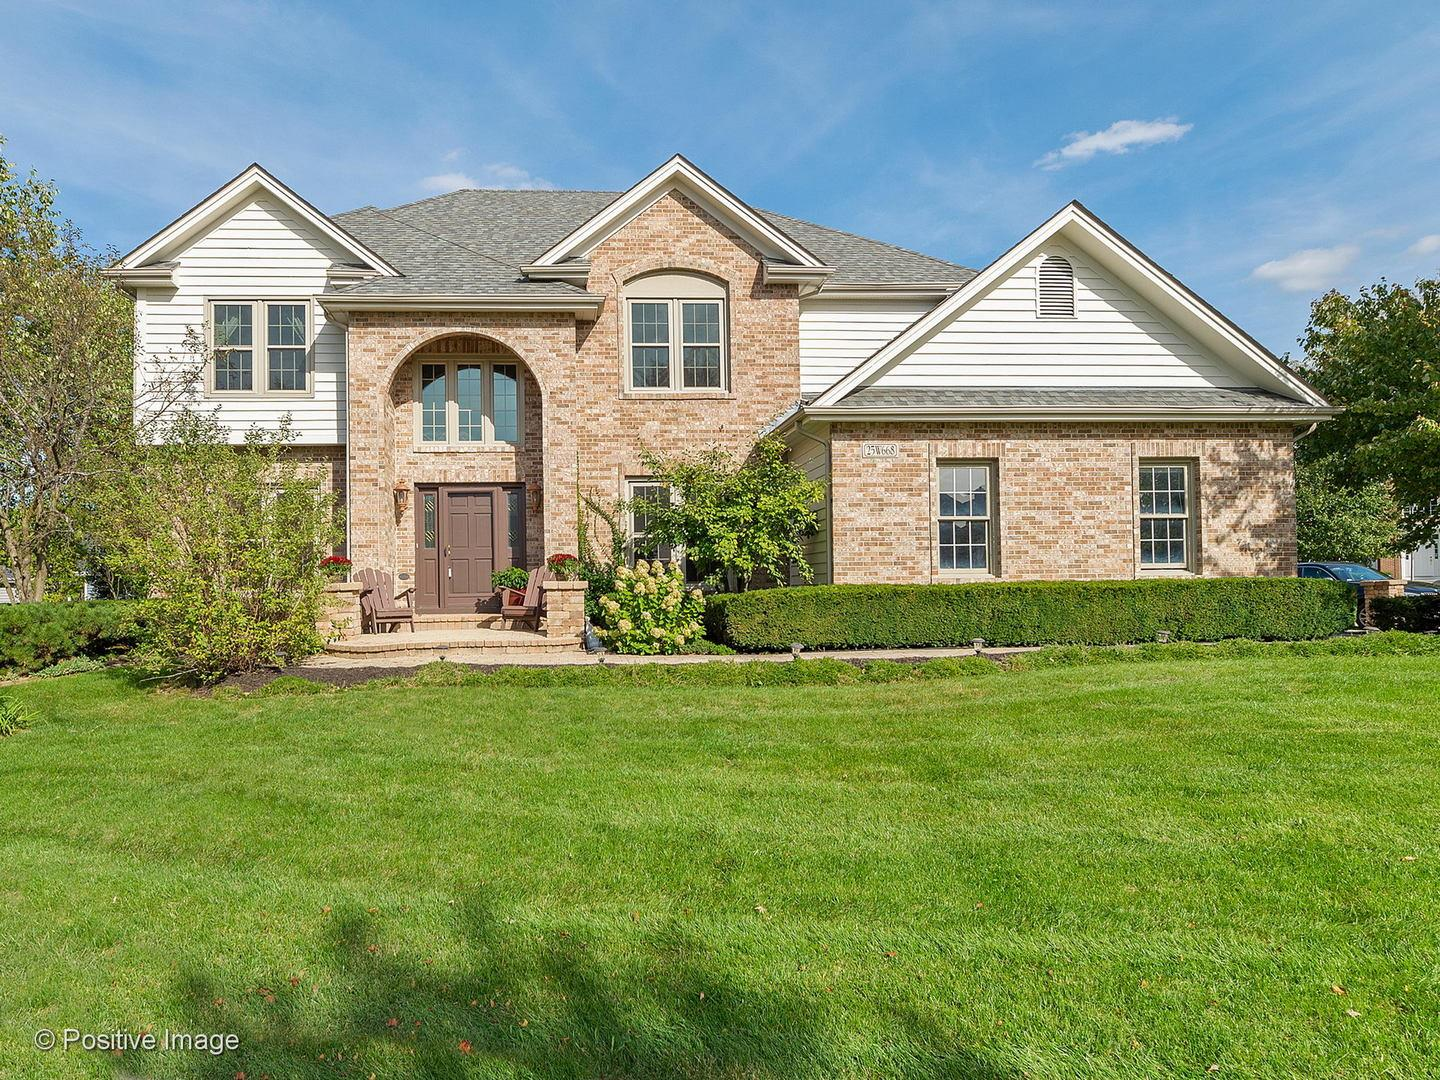 25W668 Wheatberry Court, Carol Stream, IL 60188 - #: 10884594